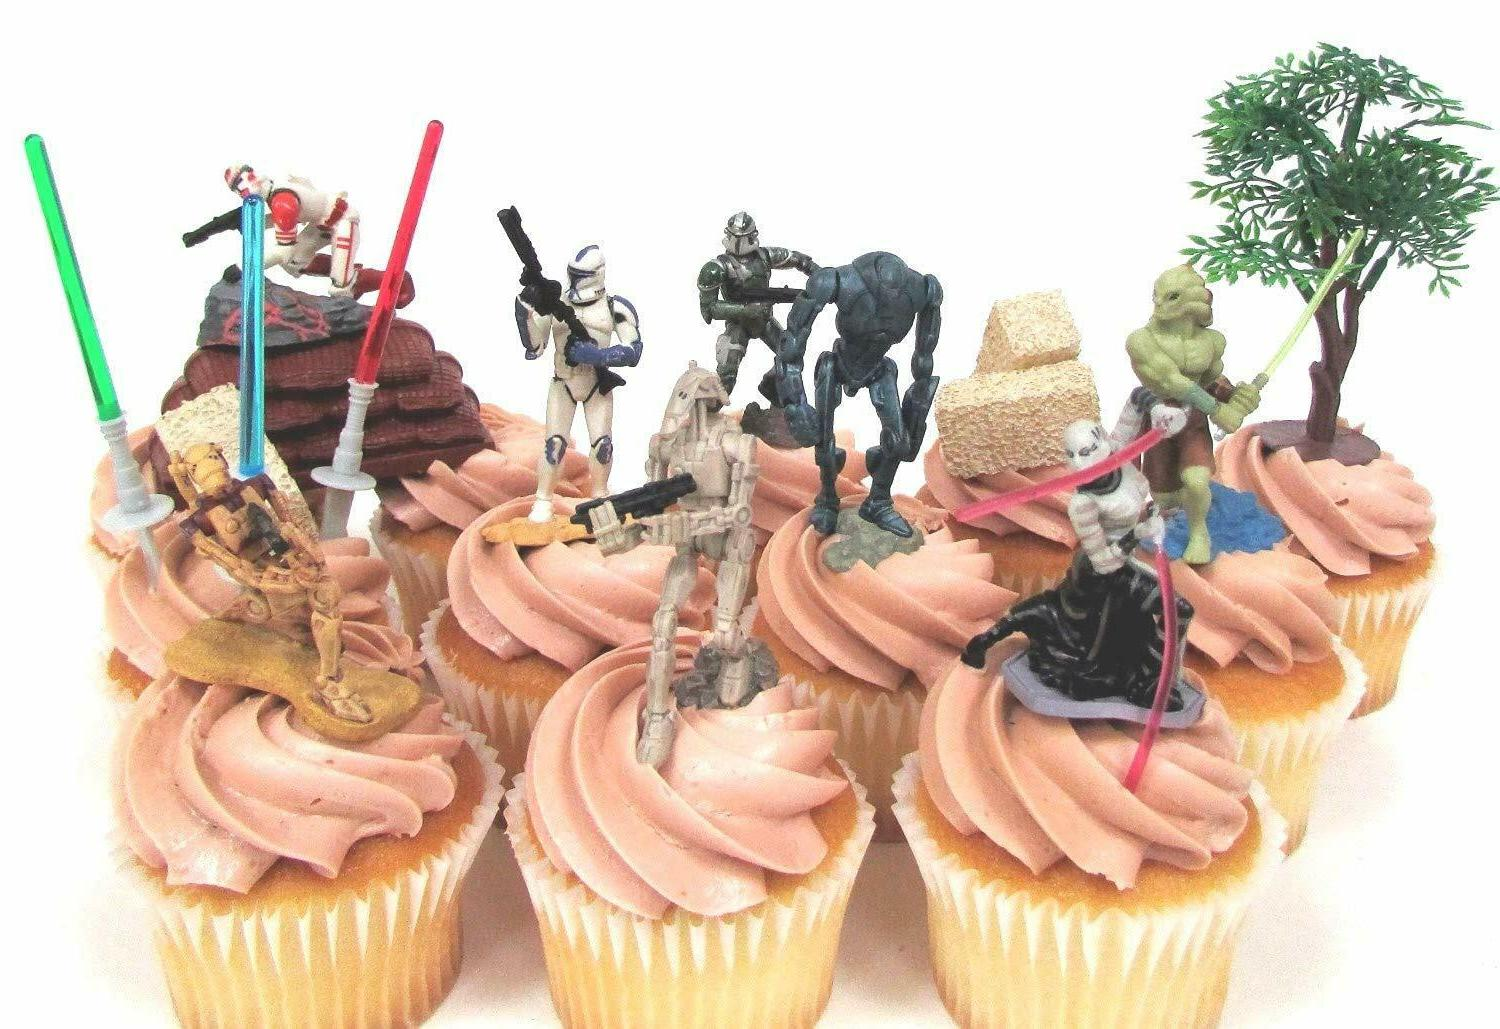 STAR WARS 14 CUPCAKE Cake Featuring Storm Troopers,